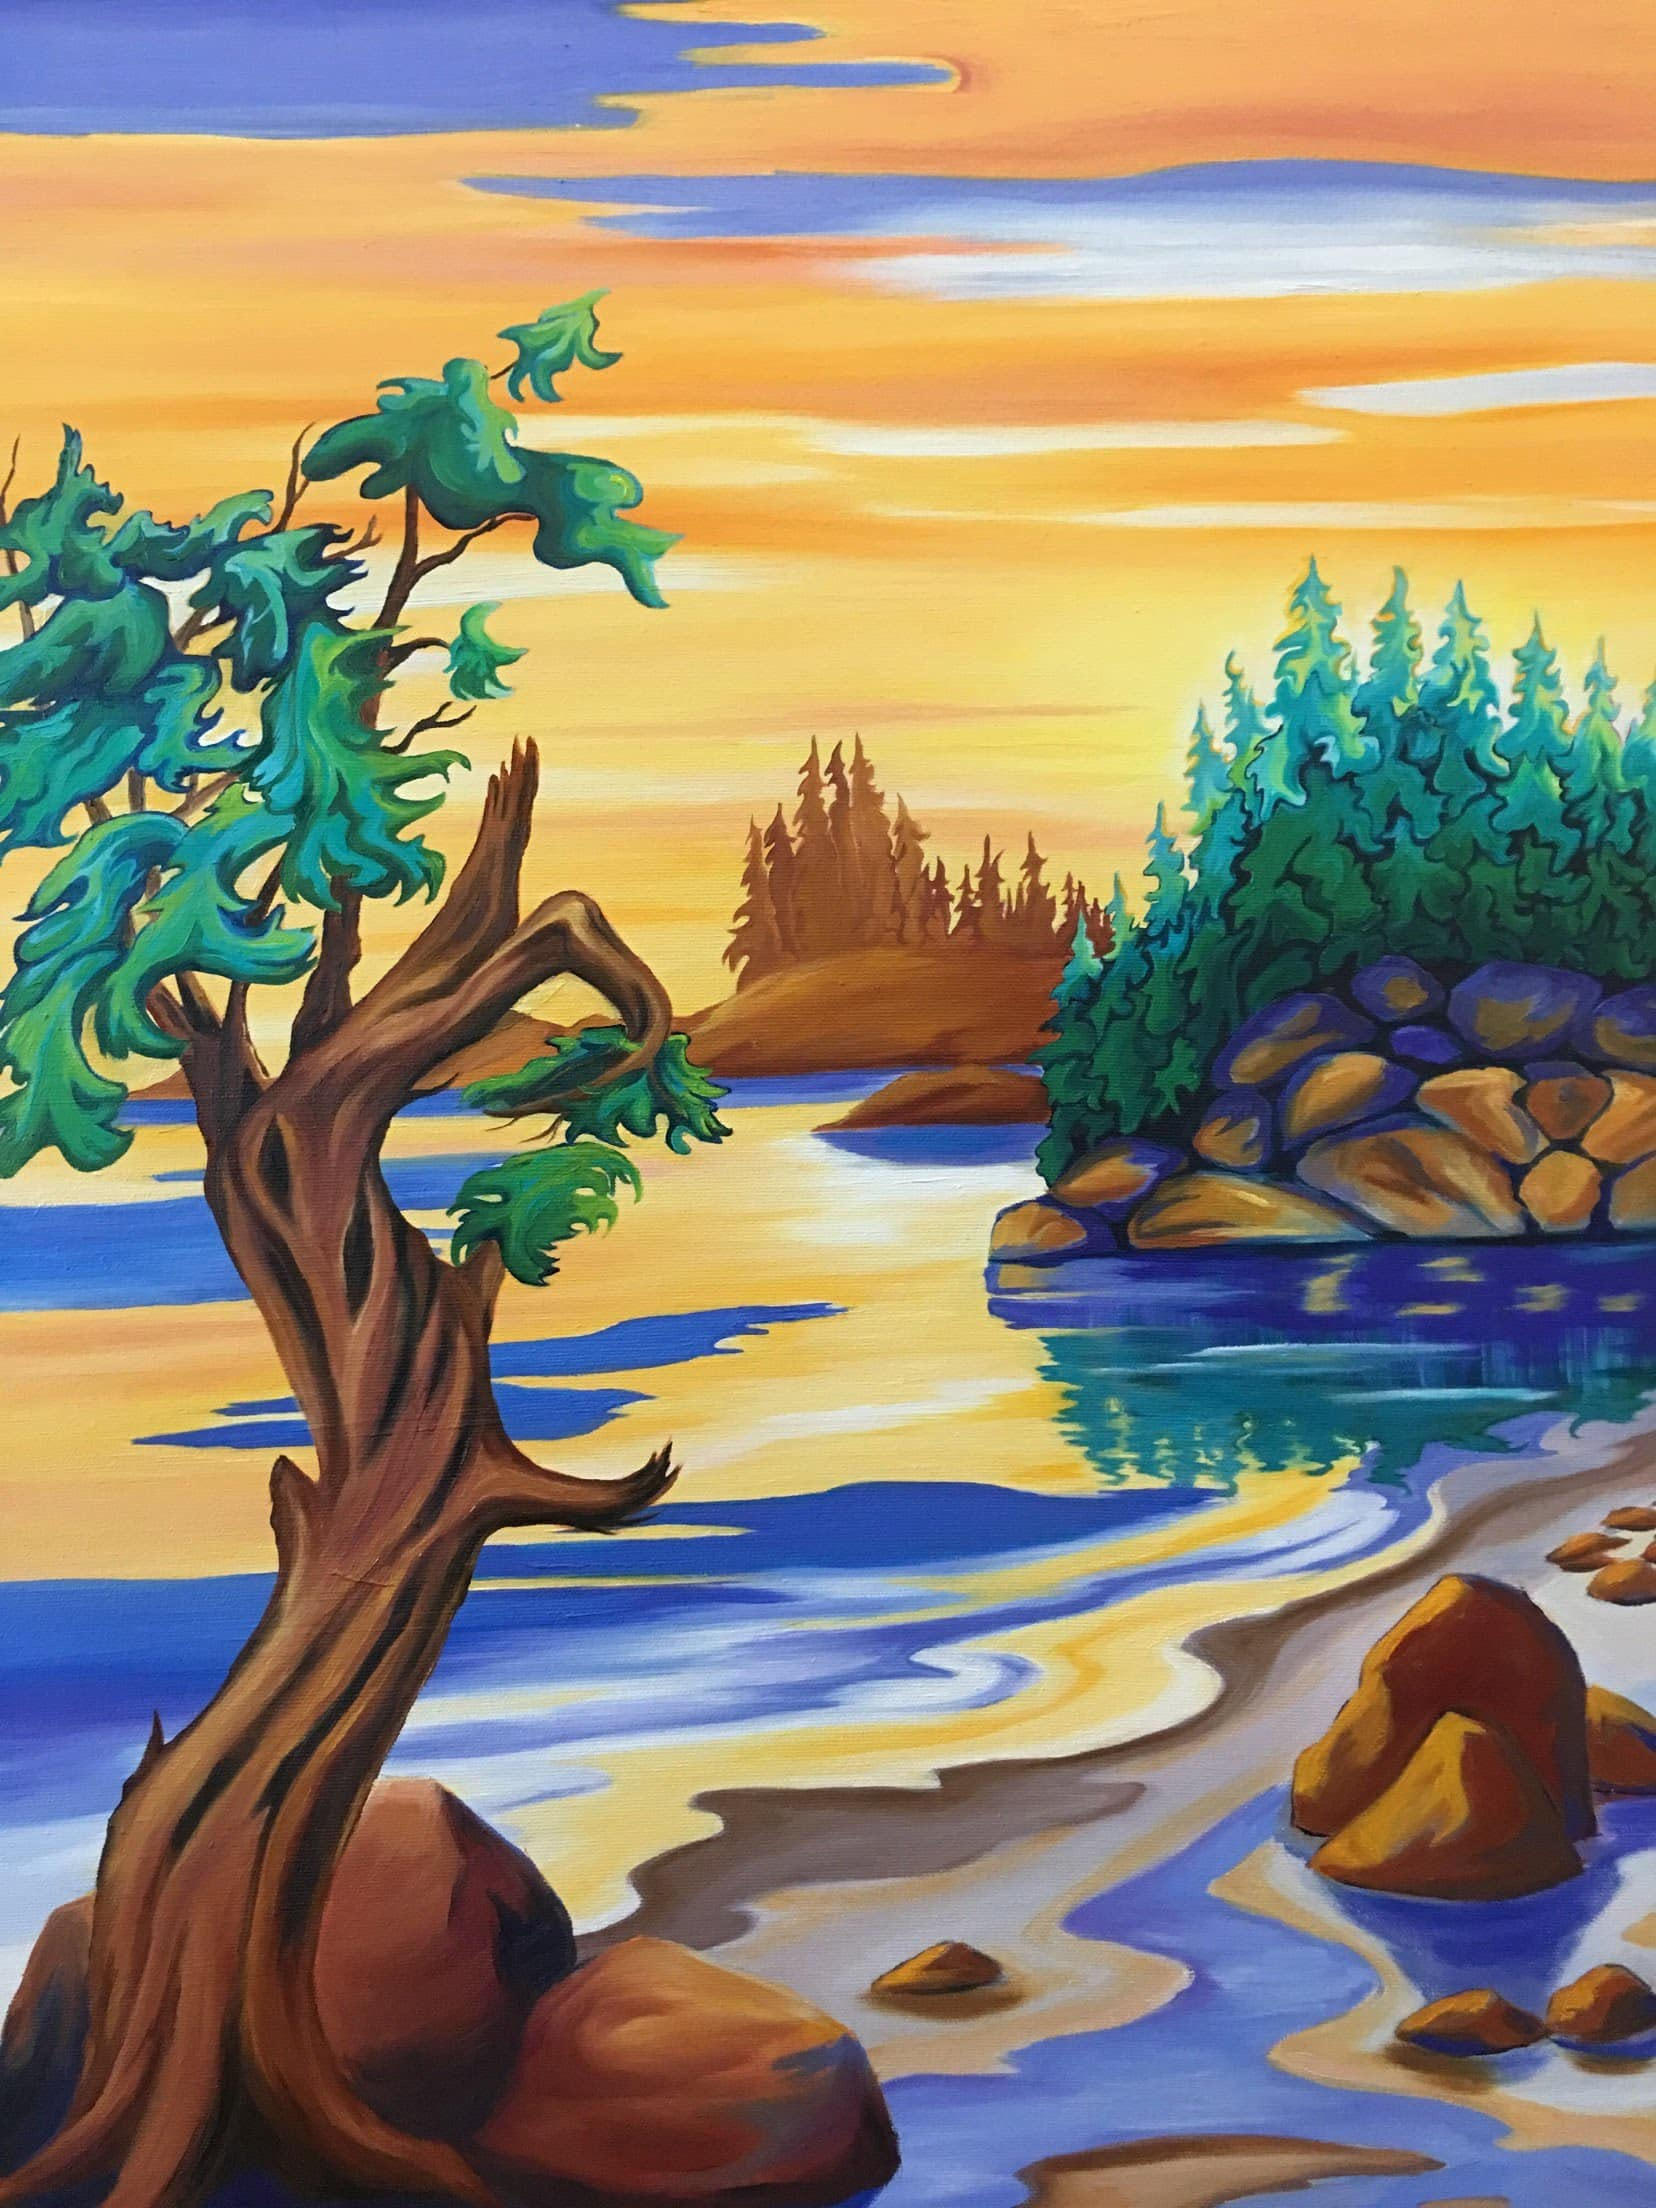 West Coast Painting by Janice Gallant https://thecreationguild.com/